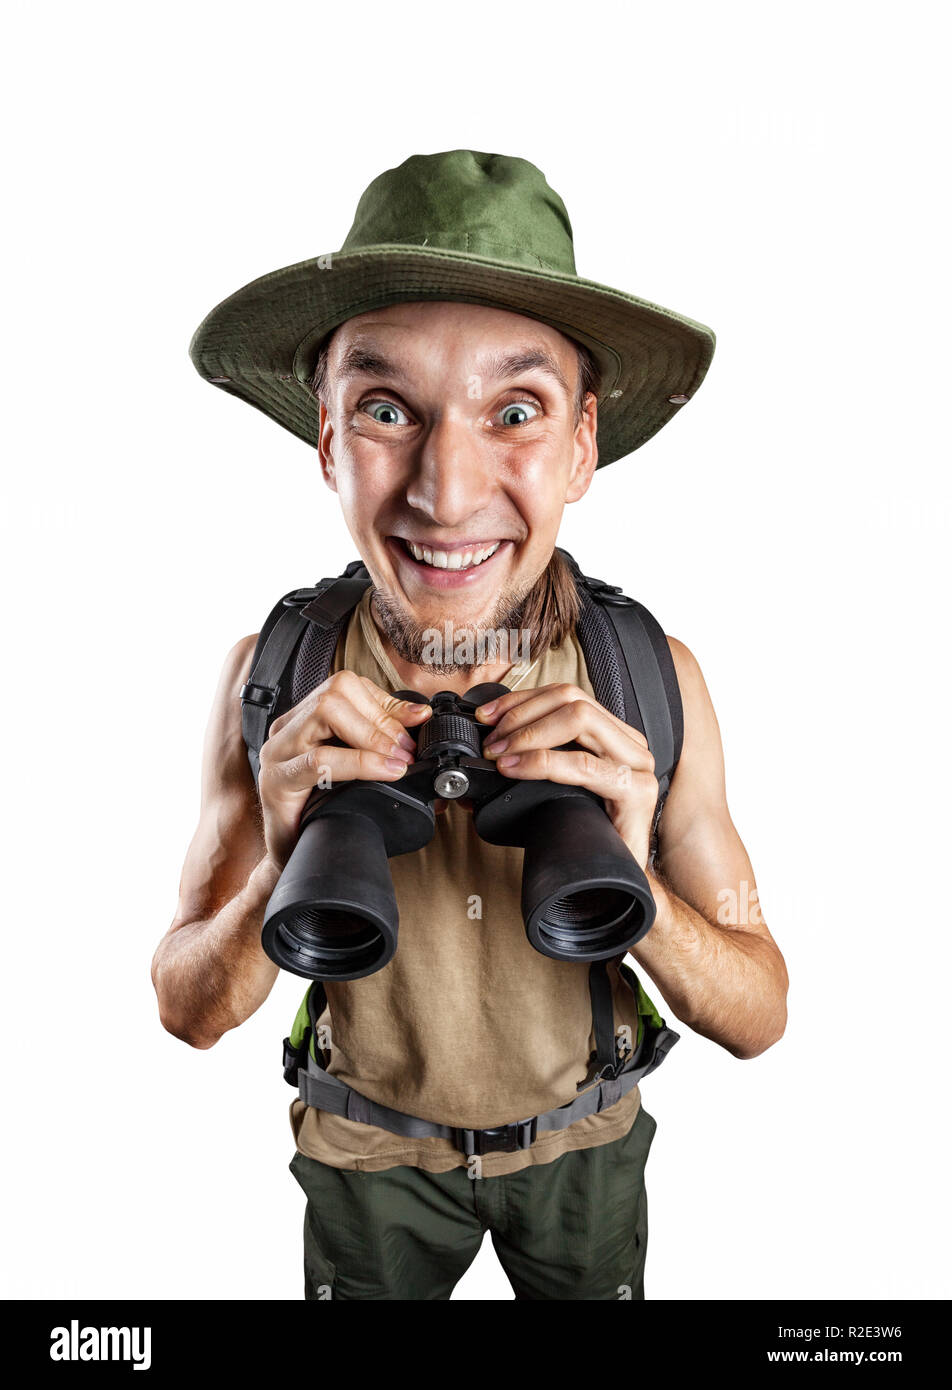 Happy man with binocular and backpack isolated on white background with clipping path - Stock Image